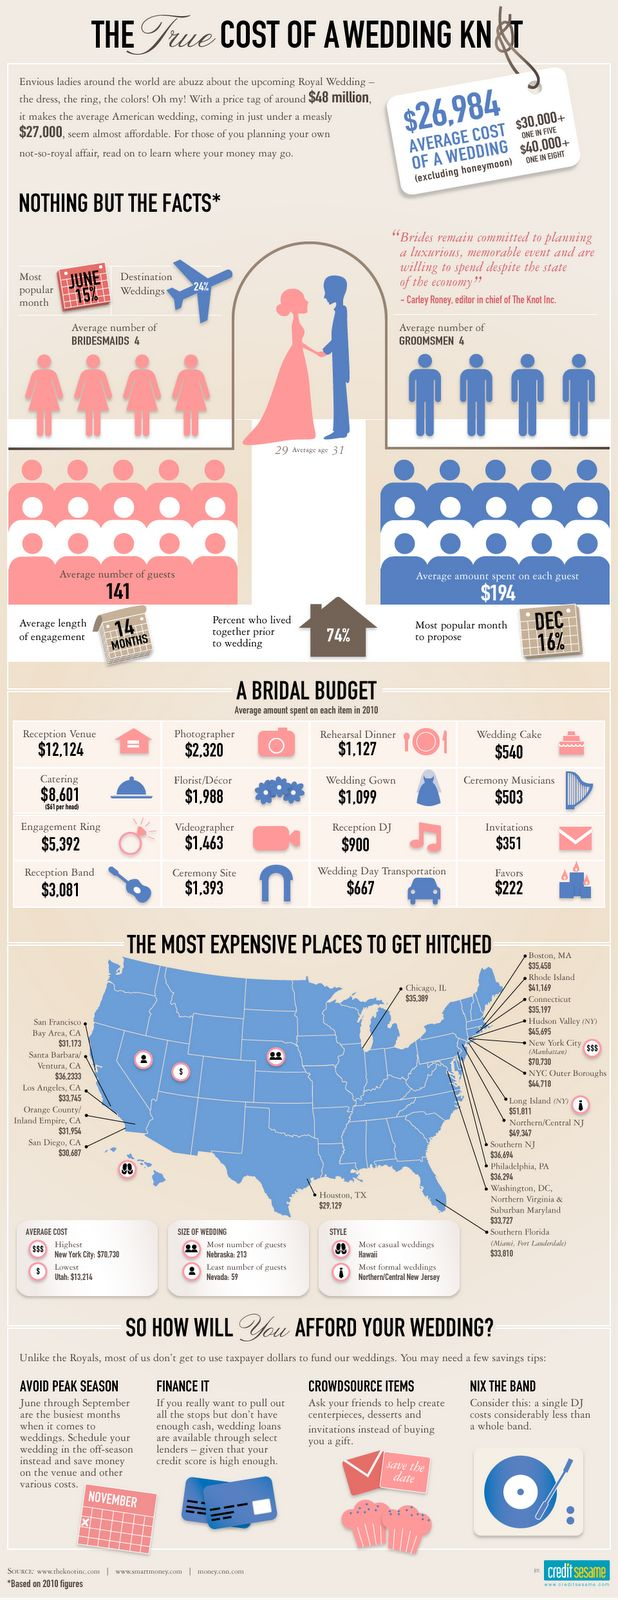 [INFOGRAPHIC] The True Cost of a Wedding Knot! #weddingplanning #wedding #infographic #weddingbudget #budget     http://visual.ly/true-cost-wedding-knot: Average Cost, Idea, True Cost, Married, Dreams, Future, Wedding Knot, Wedding Cost, Wedding Infographic